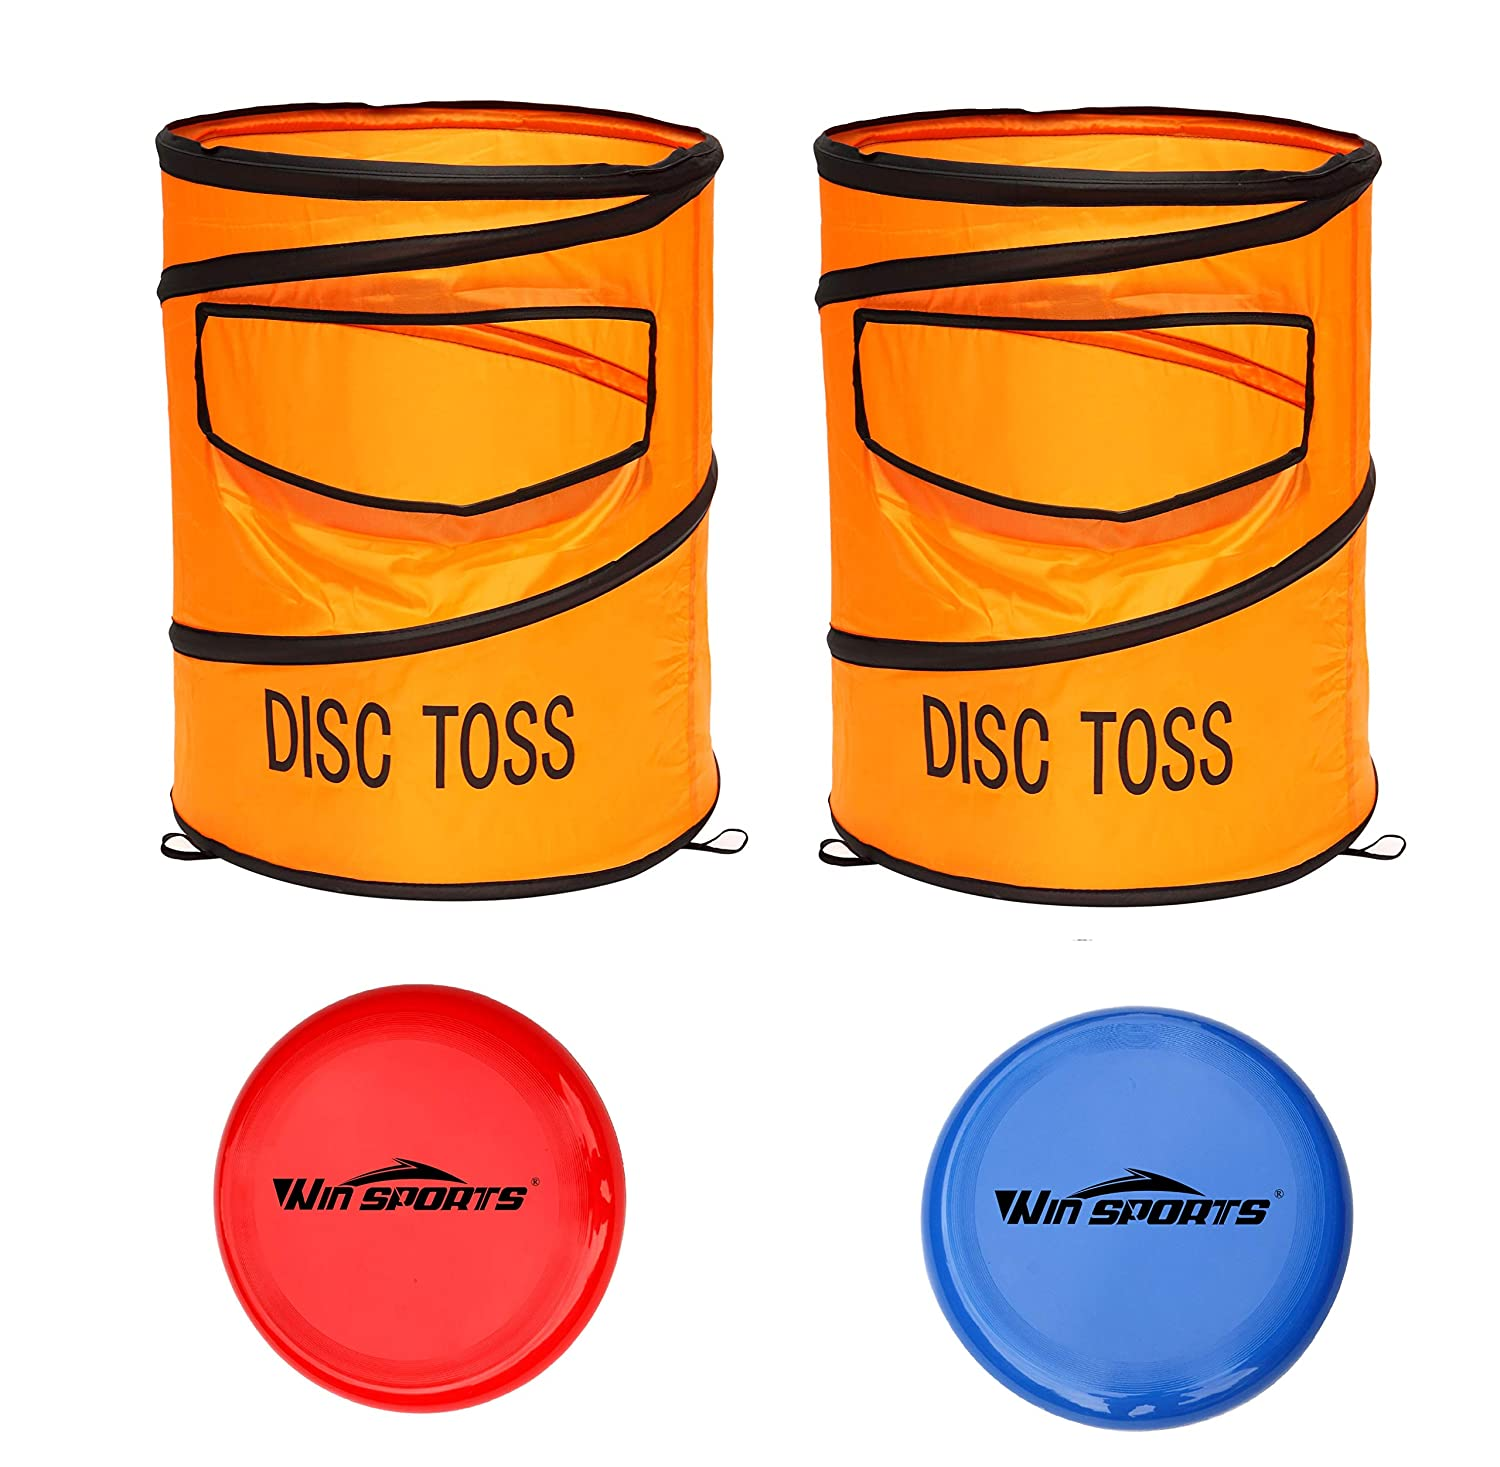 WinスポーツFolding Disc Slammingゲームset丨flying Disc Toss Dunk Game set丨 – Includes 2ディスクターゲットwith Beanバッグ& 2 Flying Discs & Carryingケース – Great for裏庭、BBQ、Tailgating and more 。 B07F815MXX